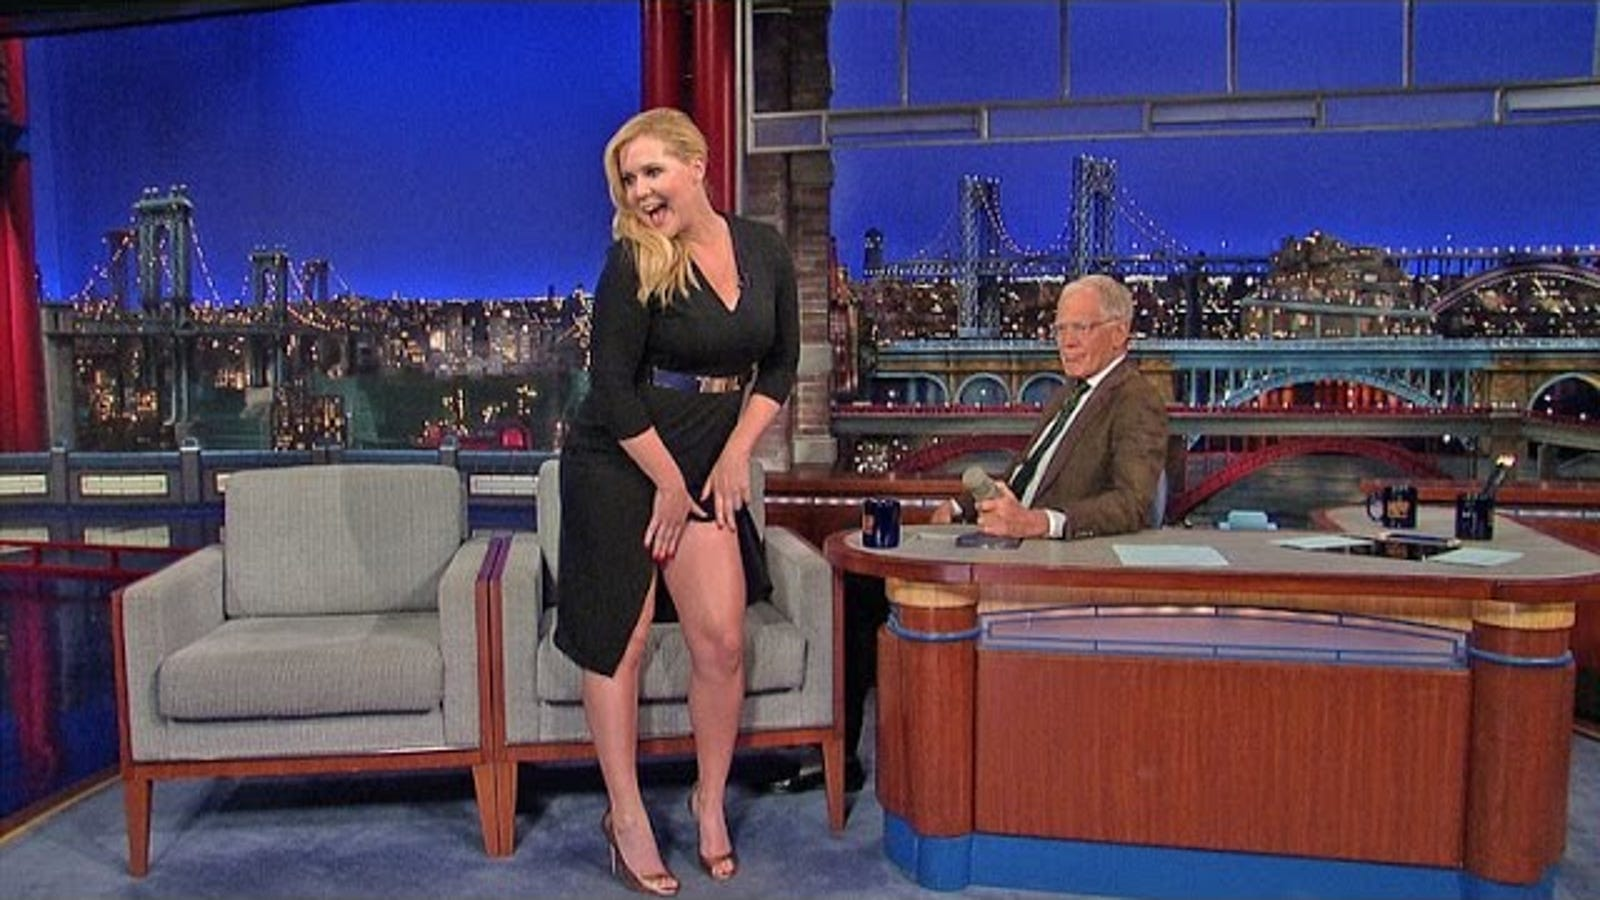 Pussy Amy Schumer naked (41 photo), Sexy, Hot, Twitter, cleavage 2017